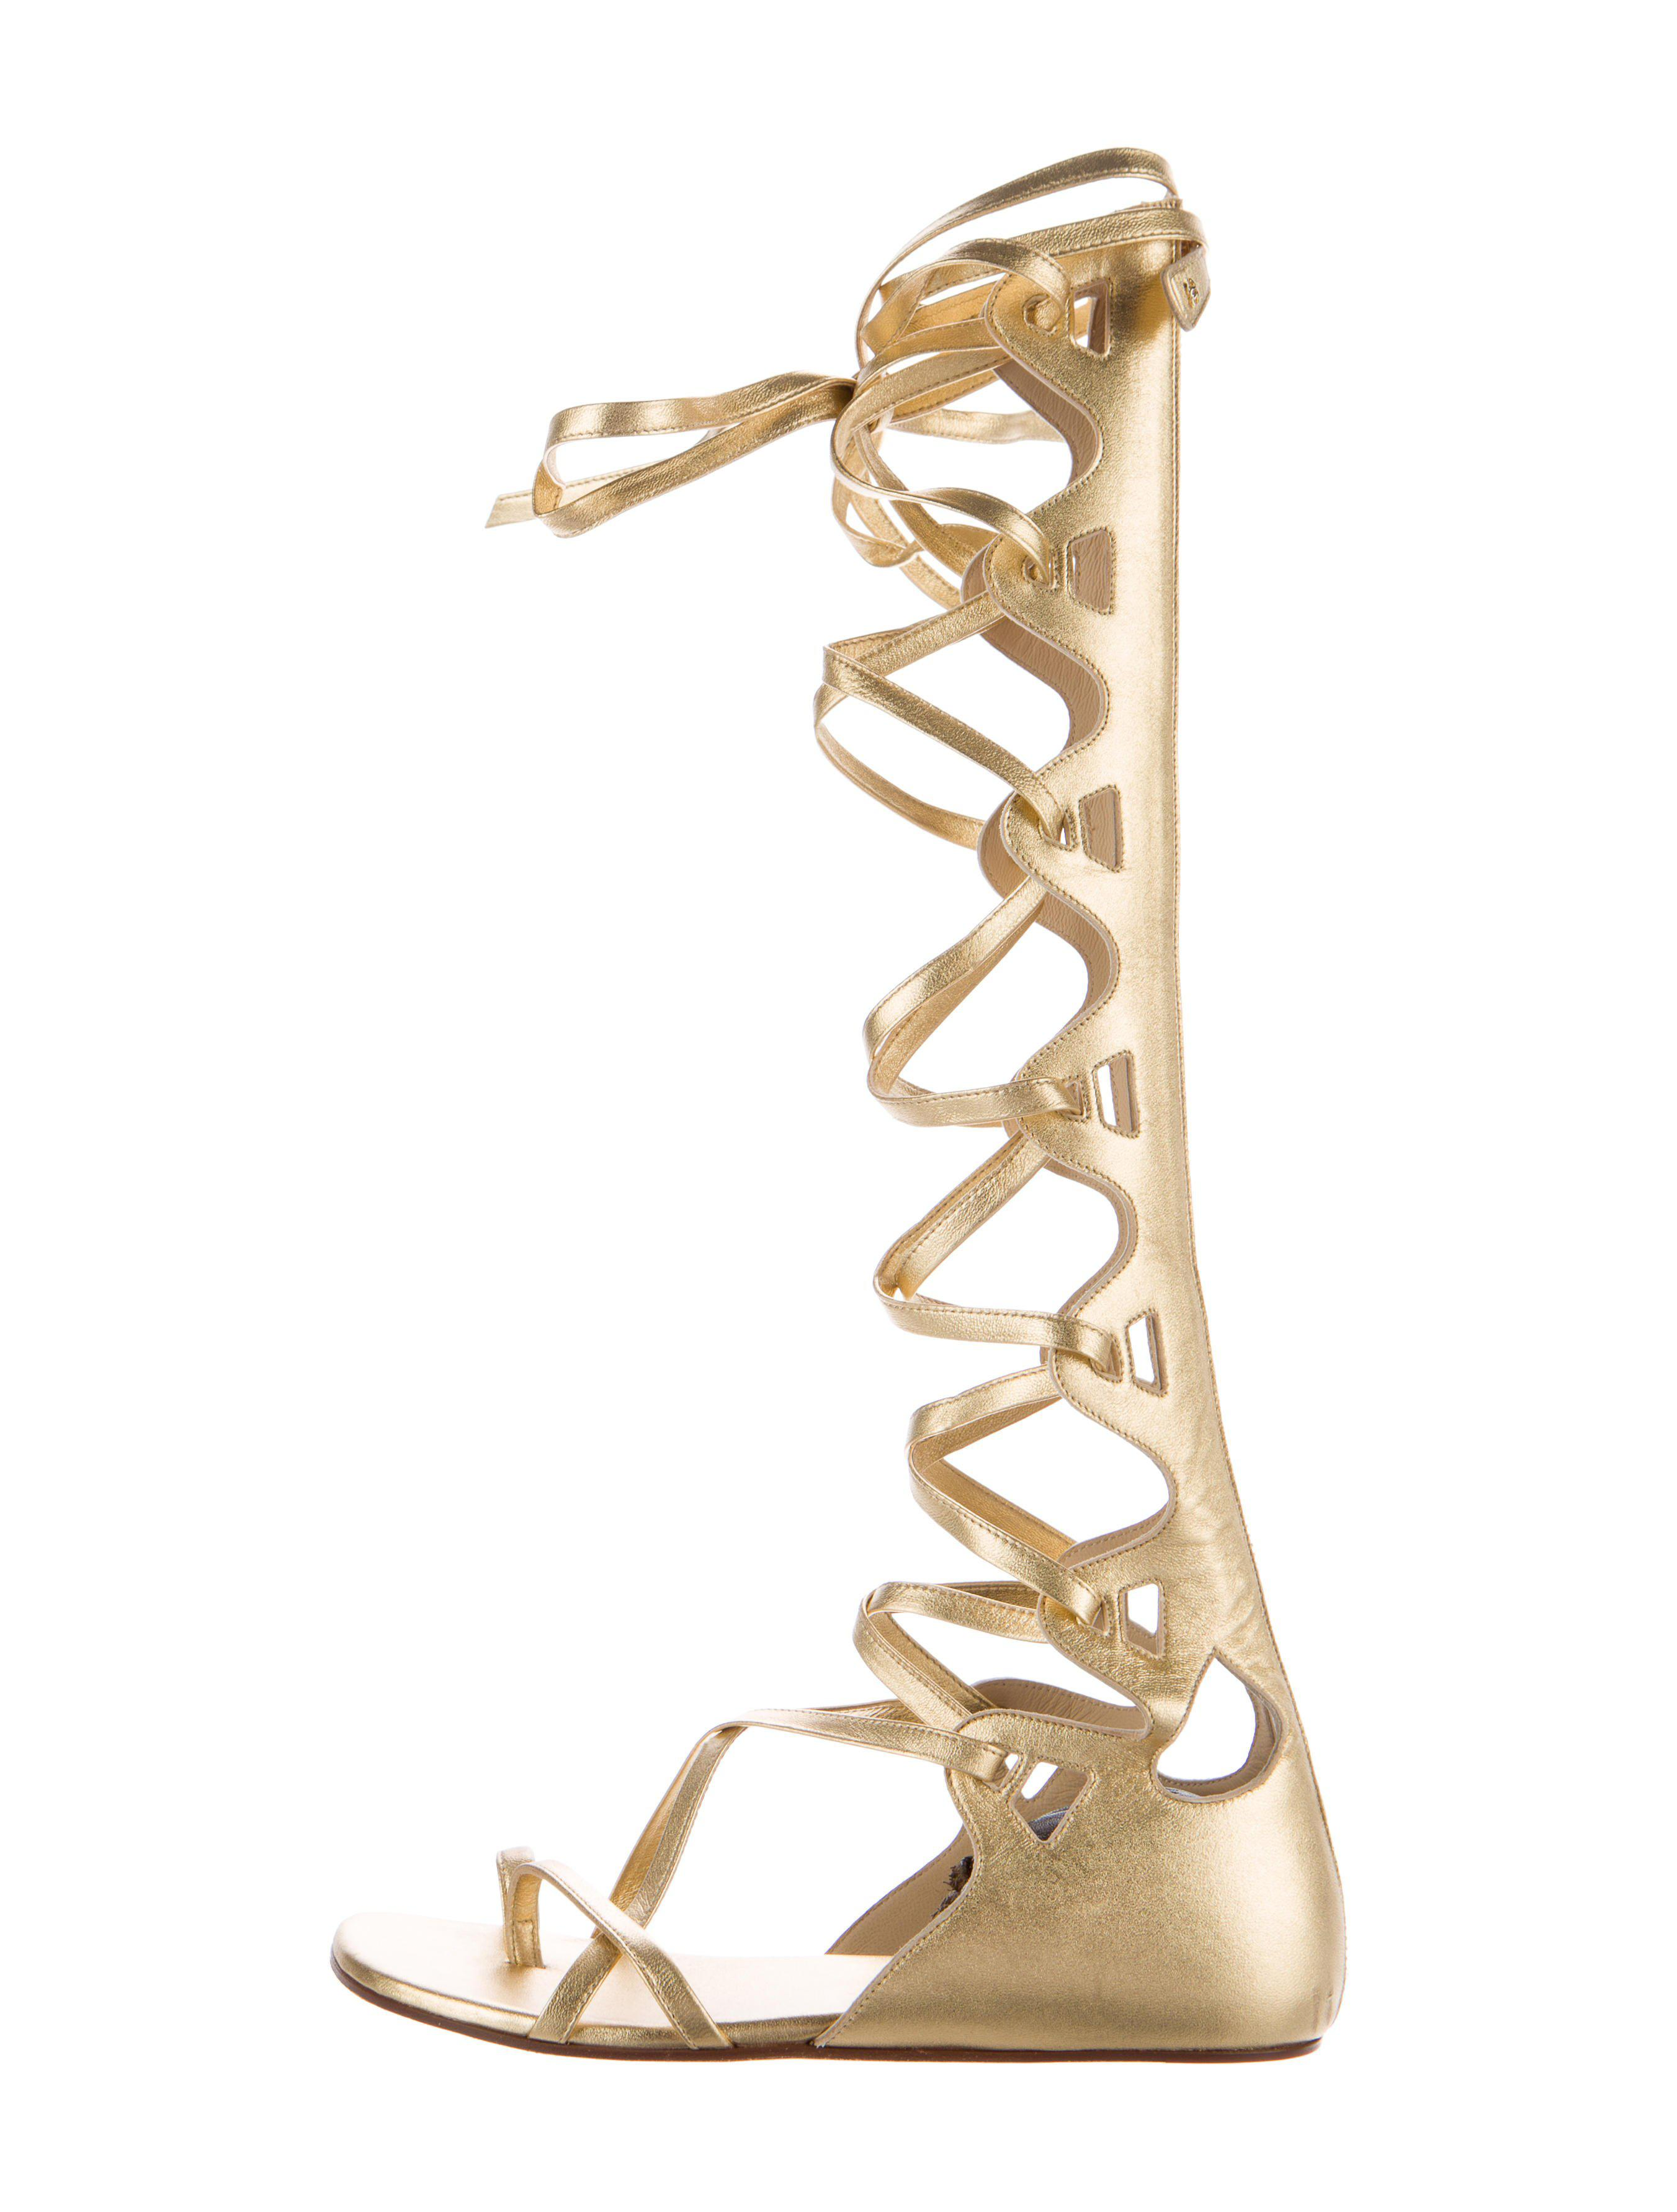 708382c851b5 Lyst chanel leather gladiator sandals gold in metallic jpg 2703x3565 Chanel  gladiator sandals